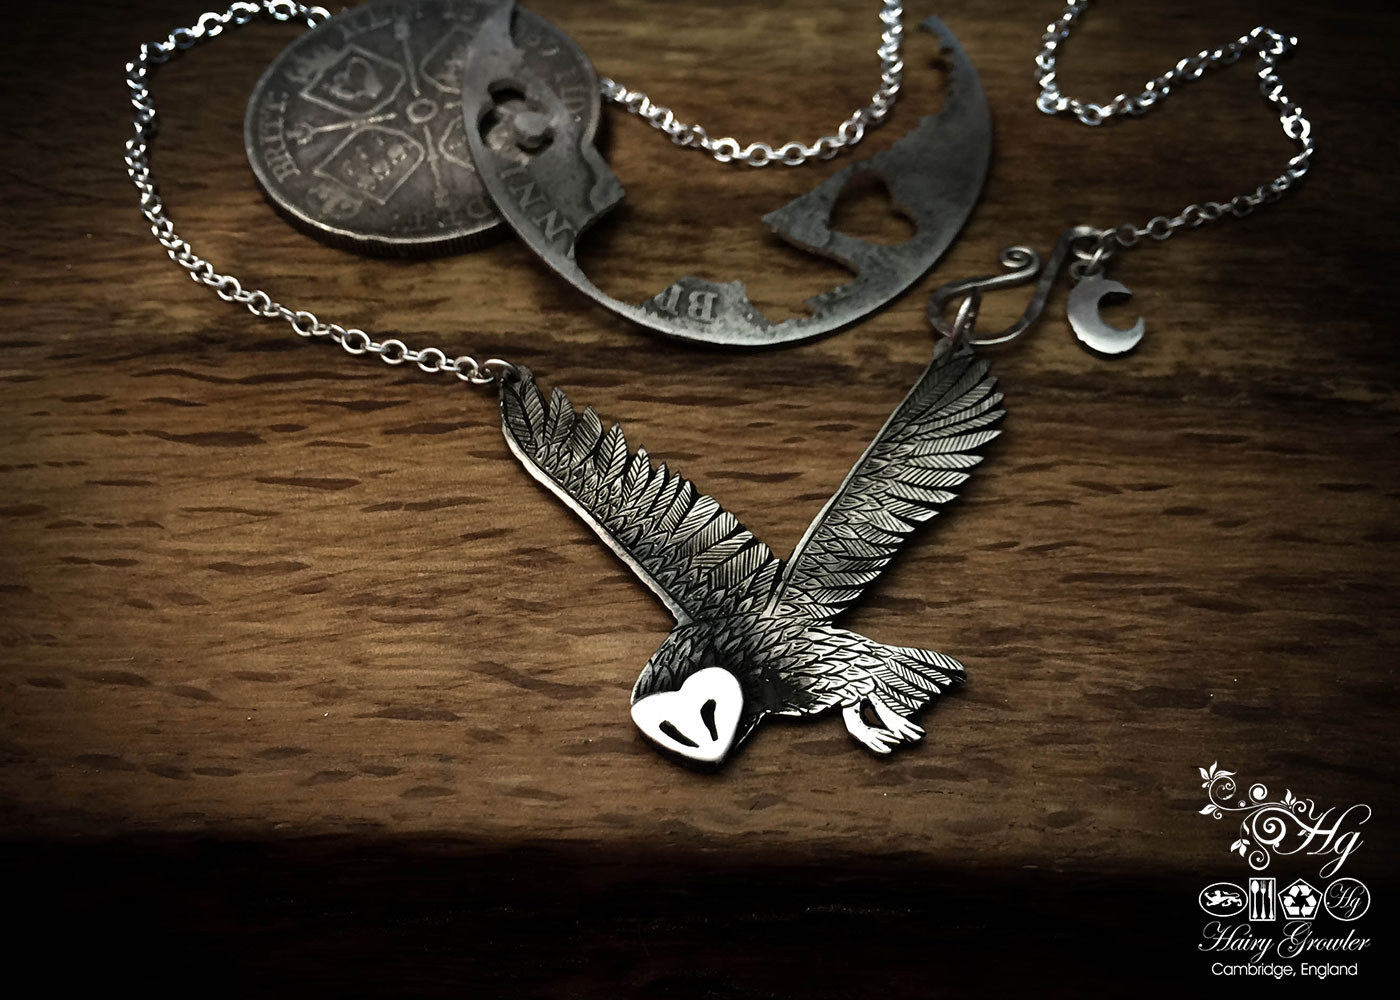 Owl necklace - ethical and original, handcrafted and recycled silver coins